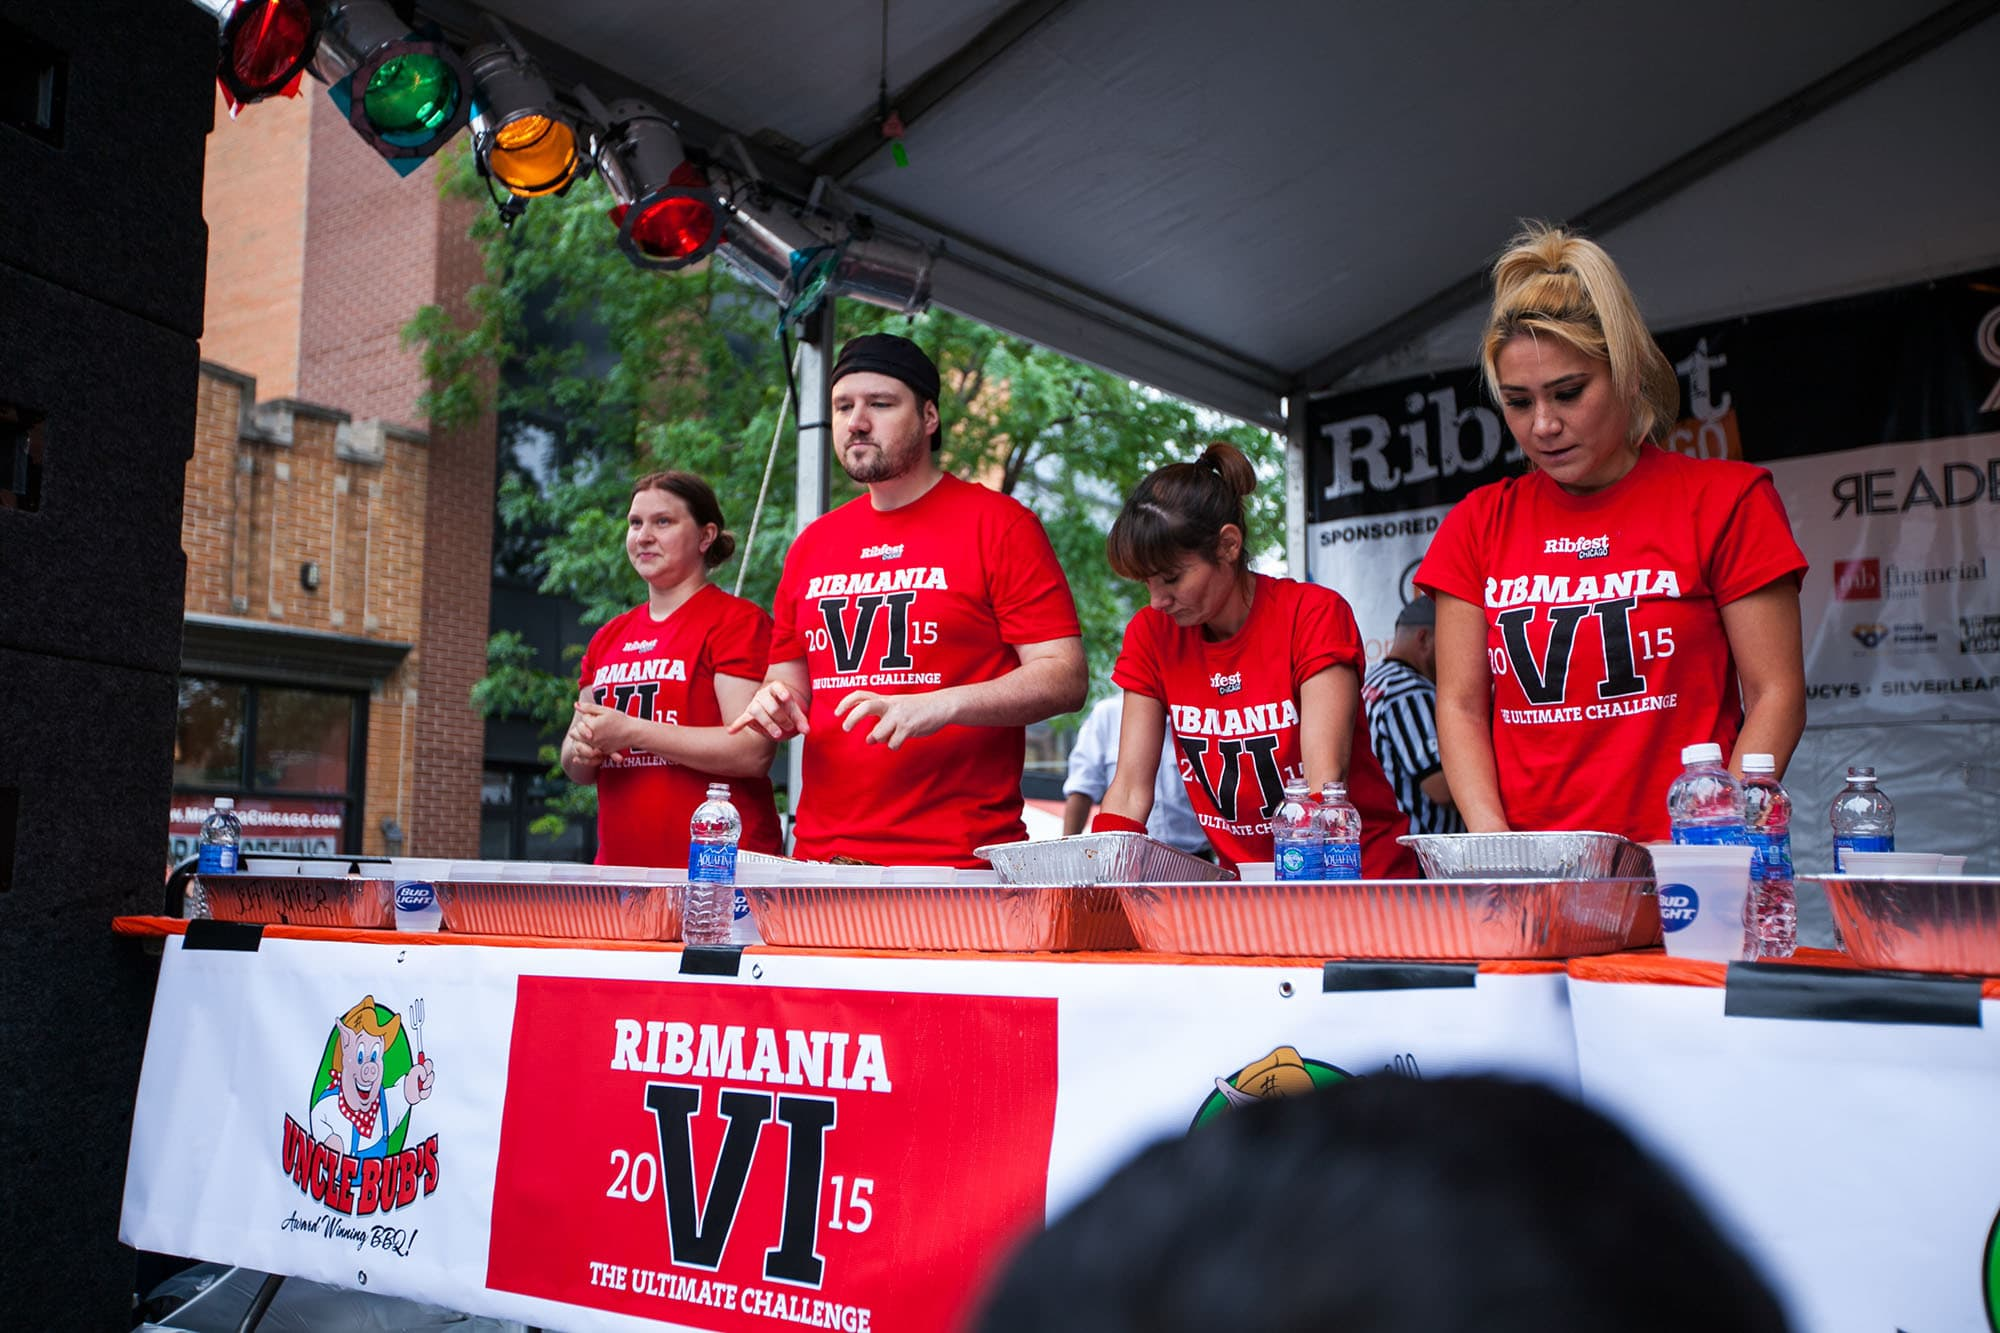 RibMania Ribs Eating Contest in Chicago